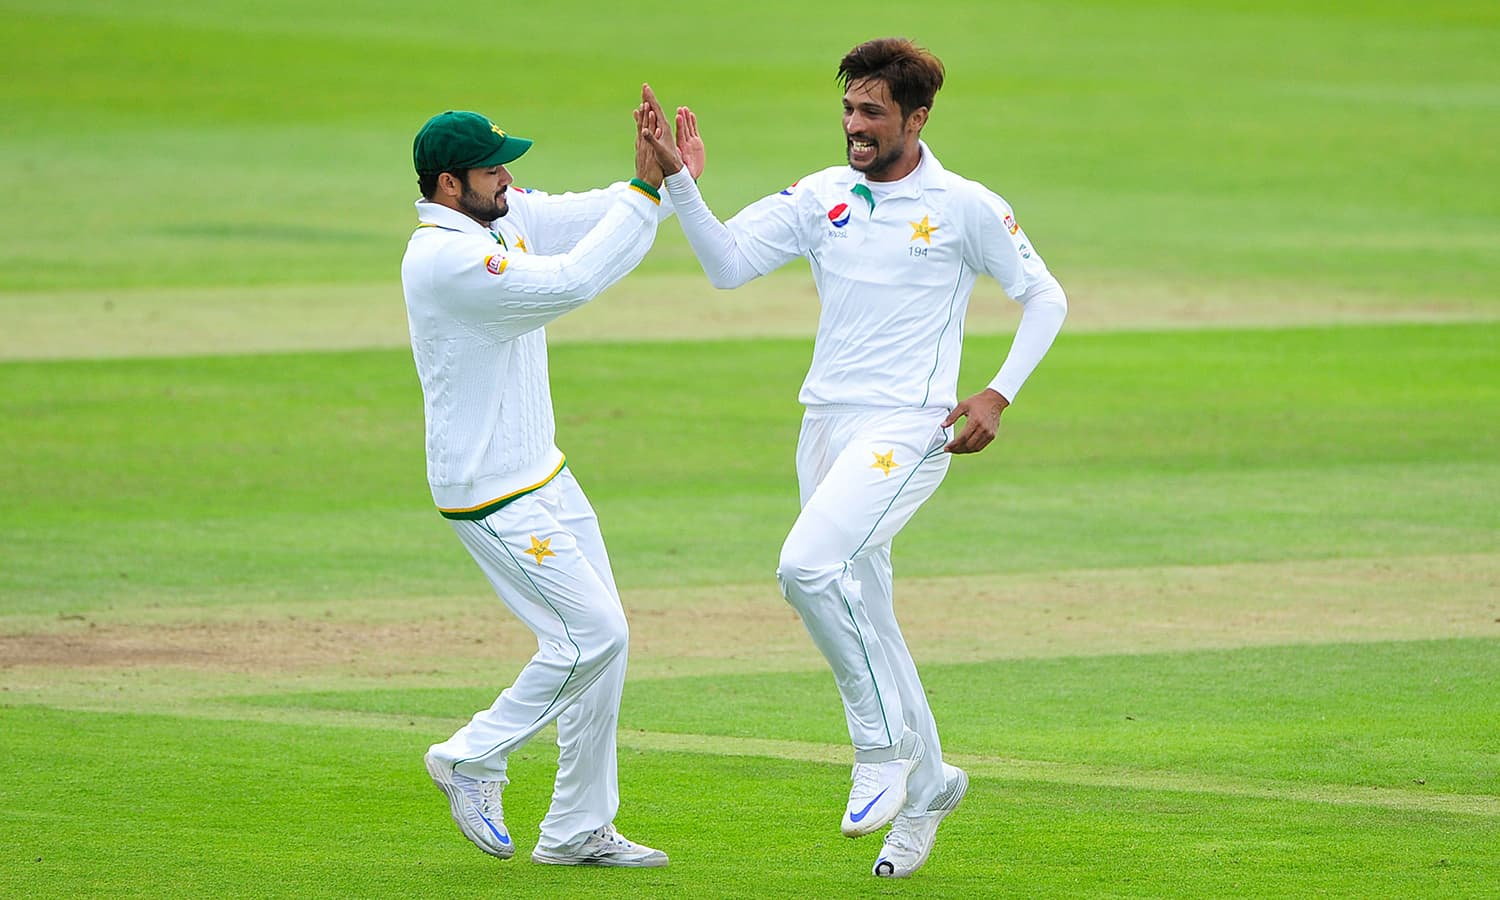 Mohammad Amir celebrates taking a wicket. — AP